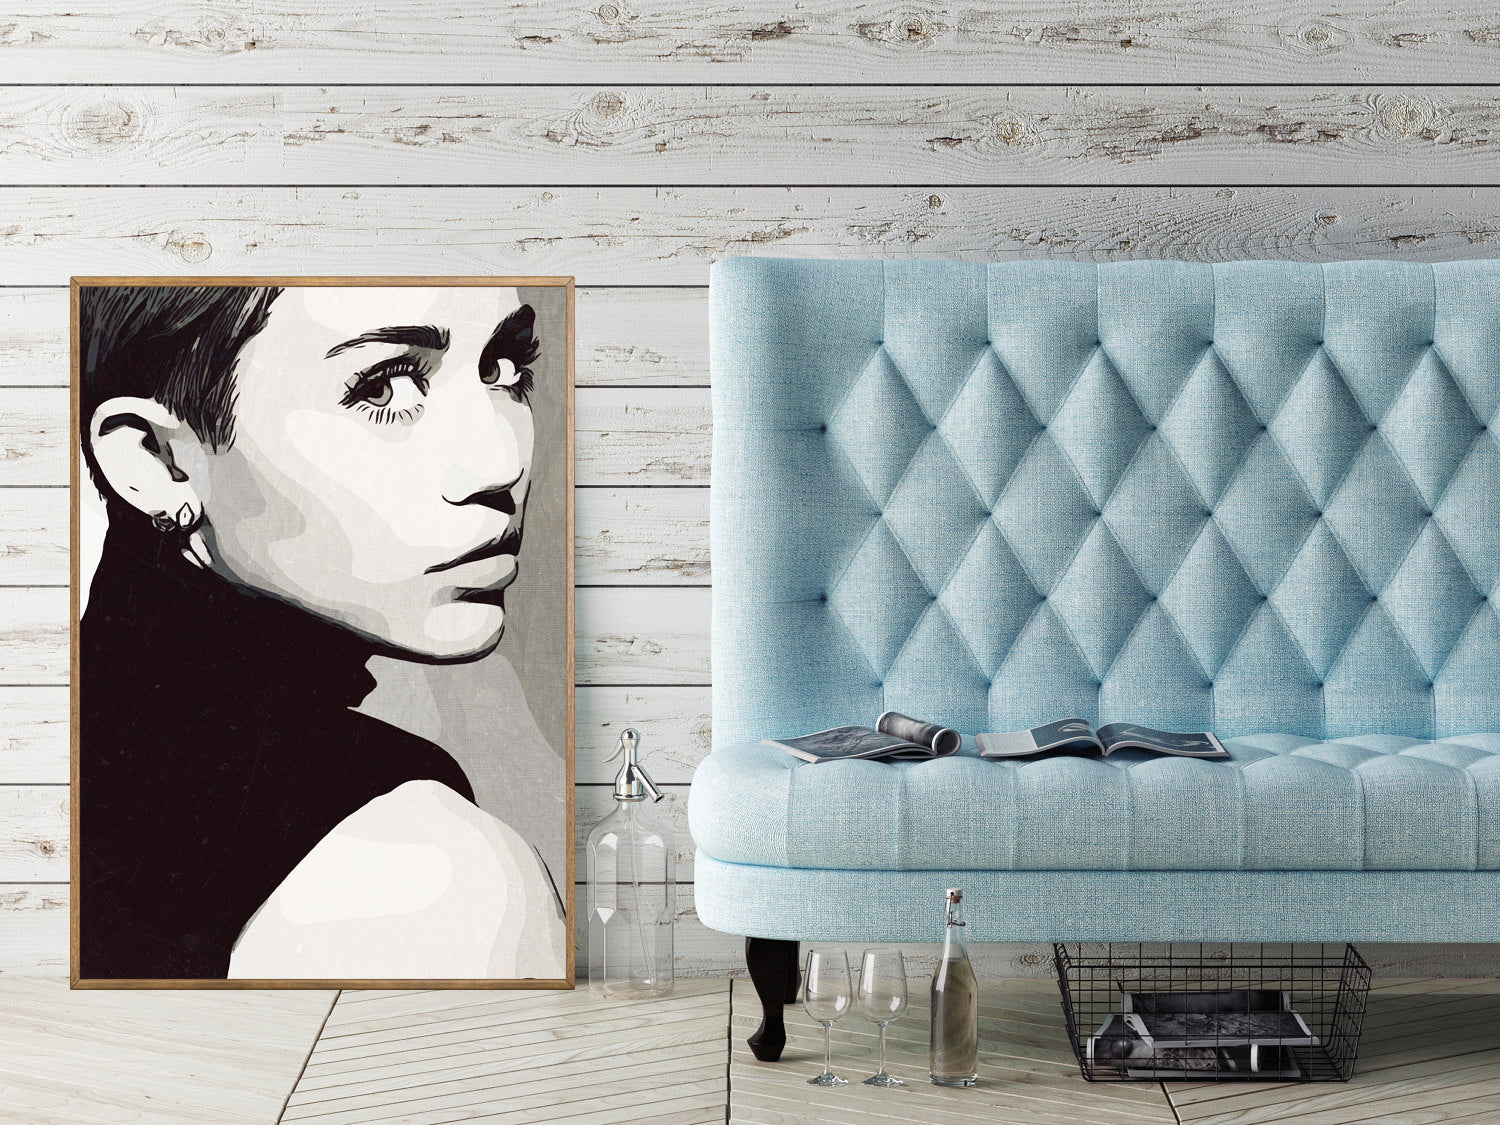 Miley Cyrus Poster,Miley Cyrus Print,Miley Cyrus Home Decor,Miley Cyrus Giclee Print,Music Poster,Instant Download,Pop Culture,Painting